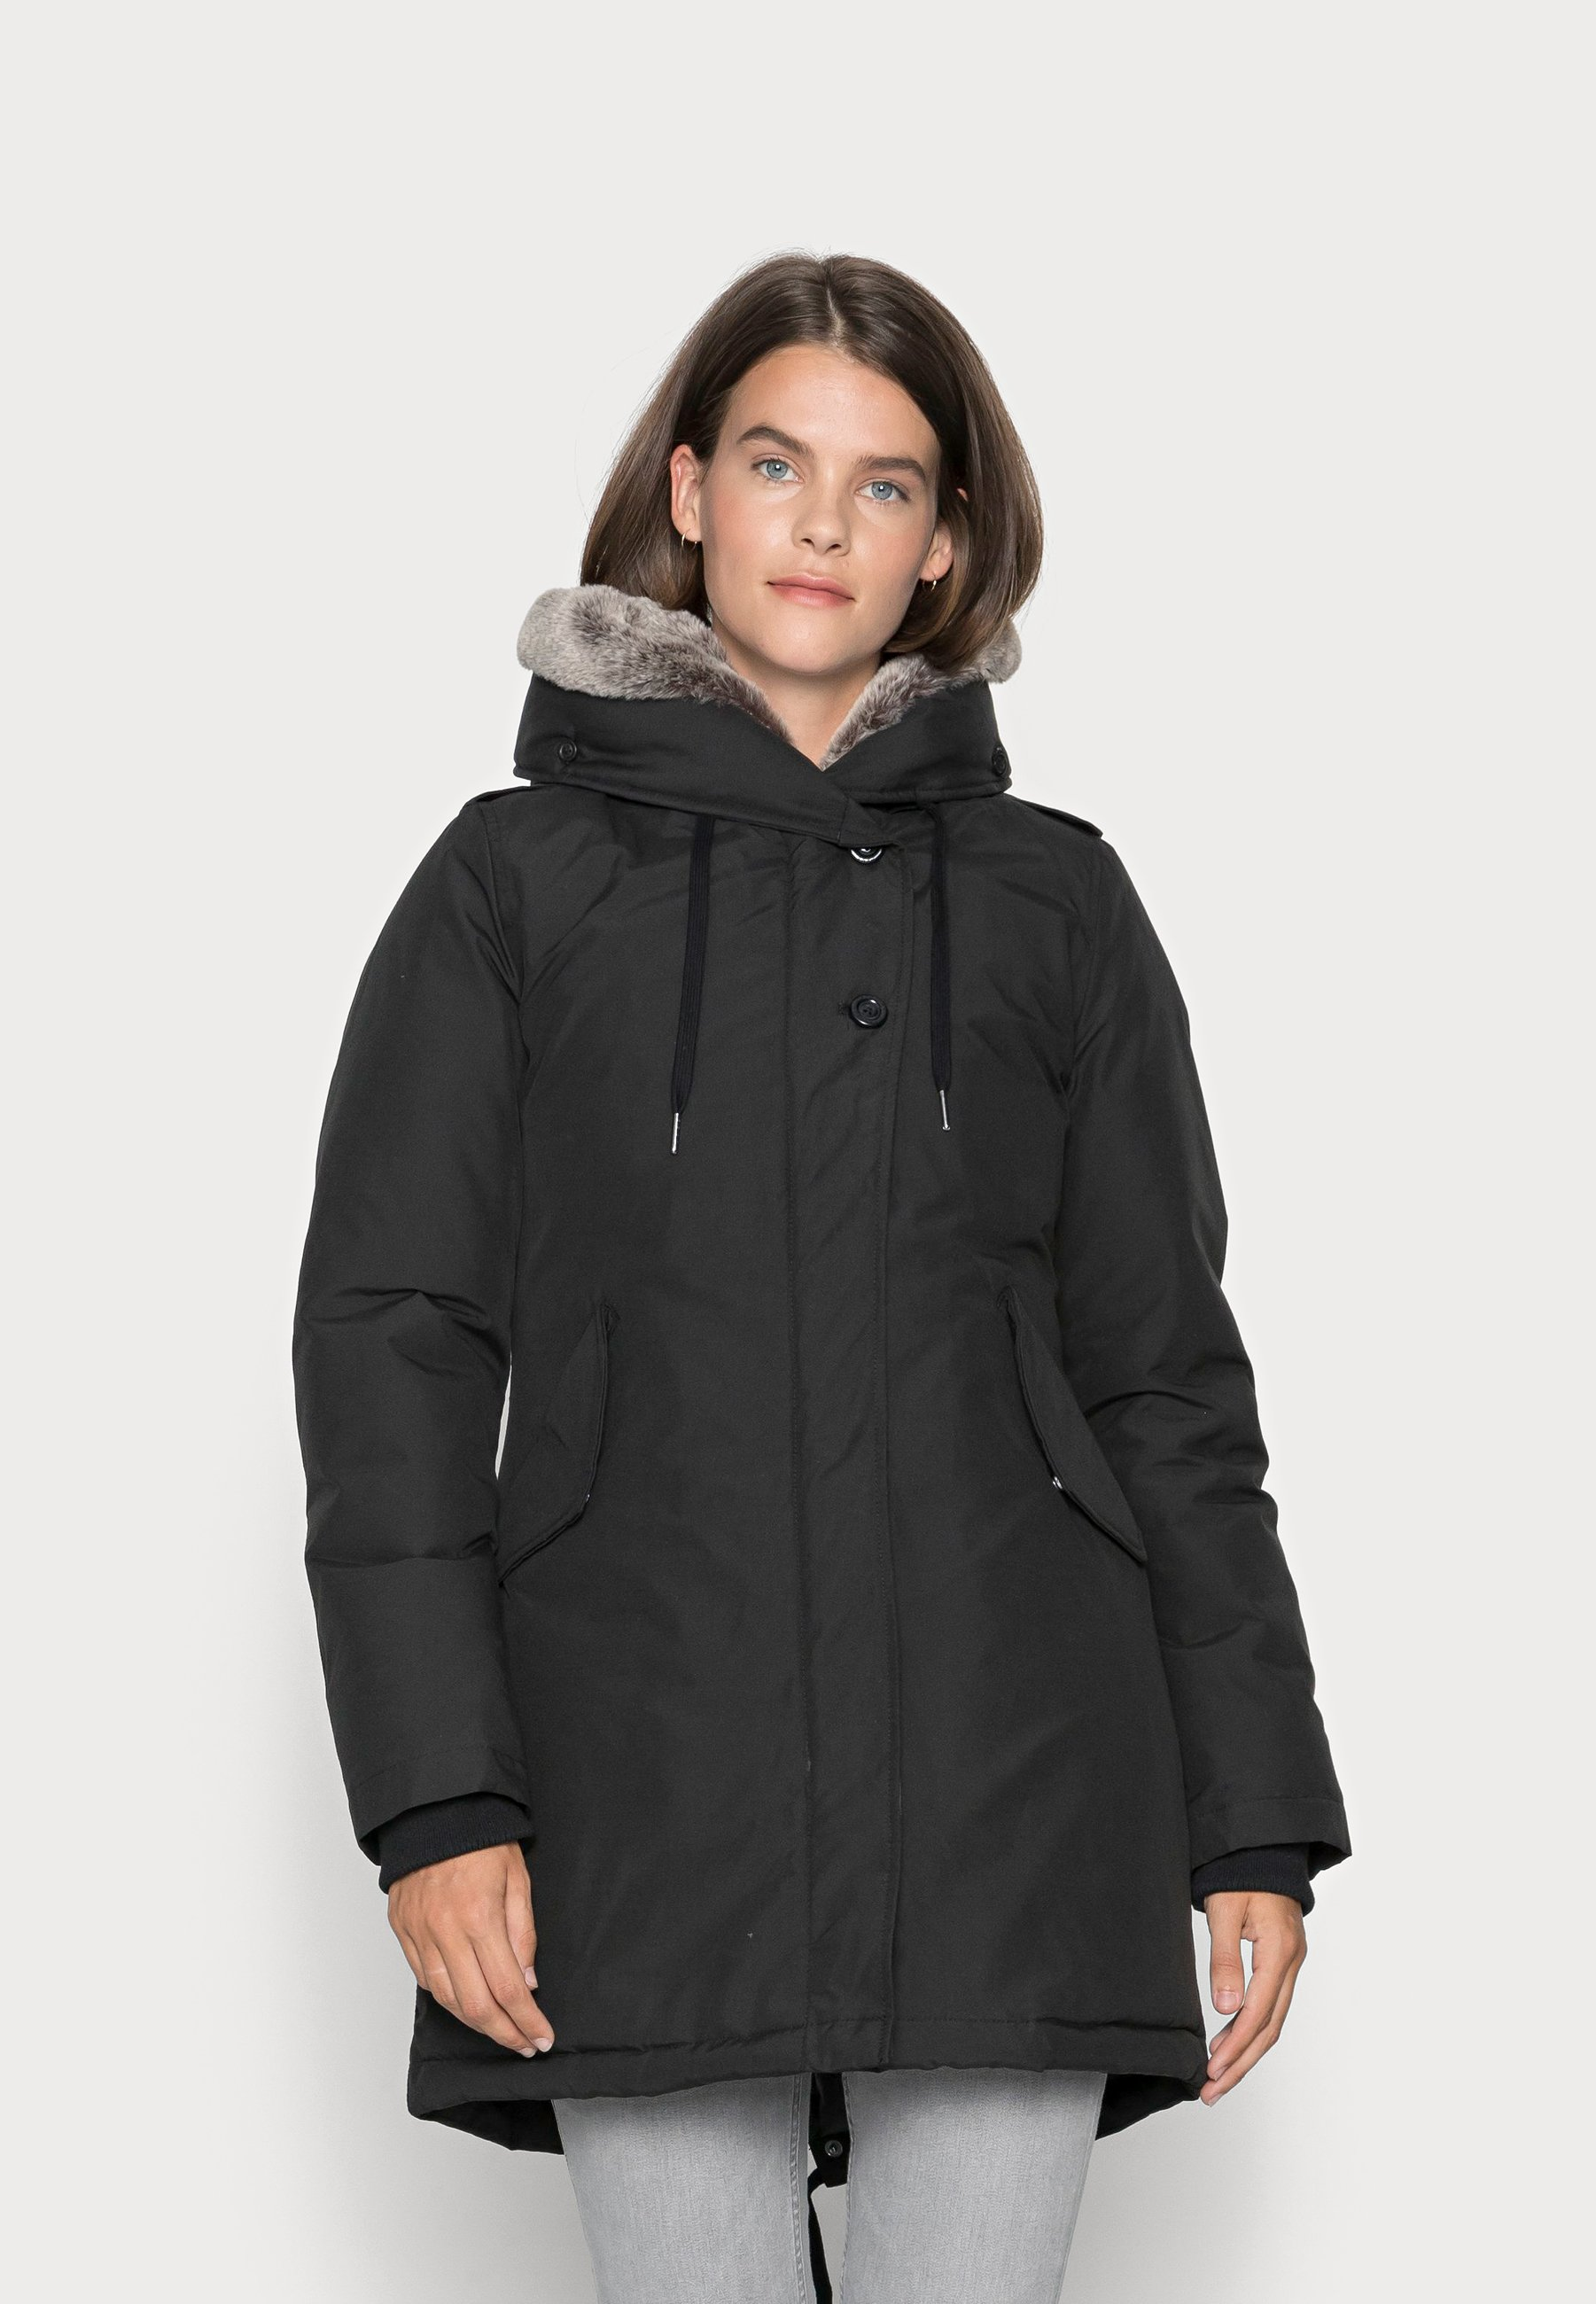 Donna LANIGAN FAKEFUR ORLYLAG - Cappotto invernale